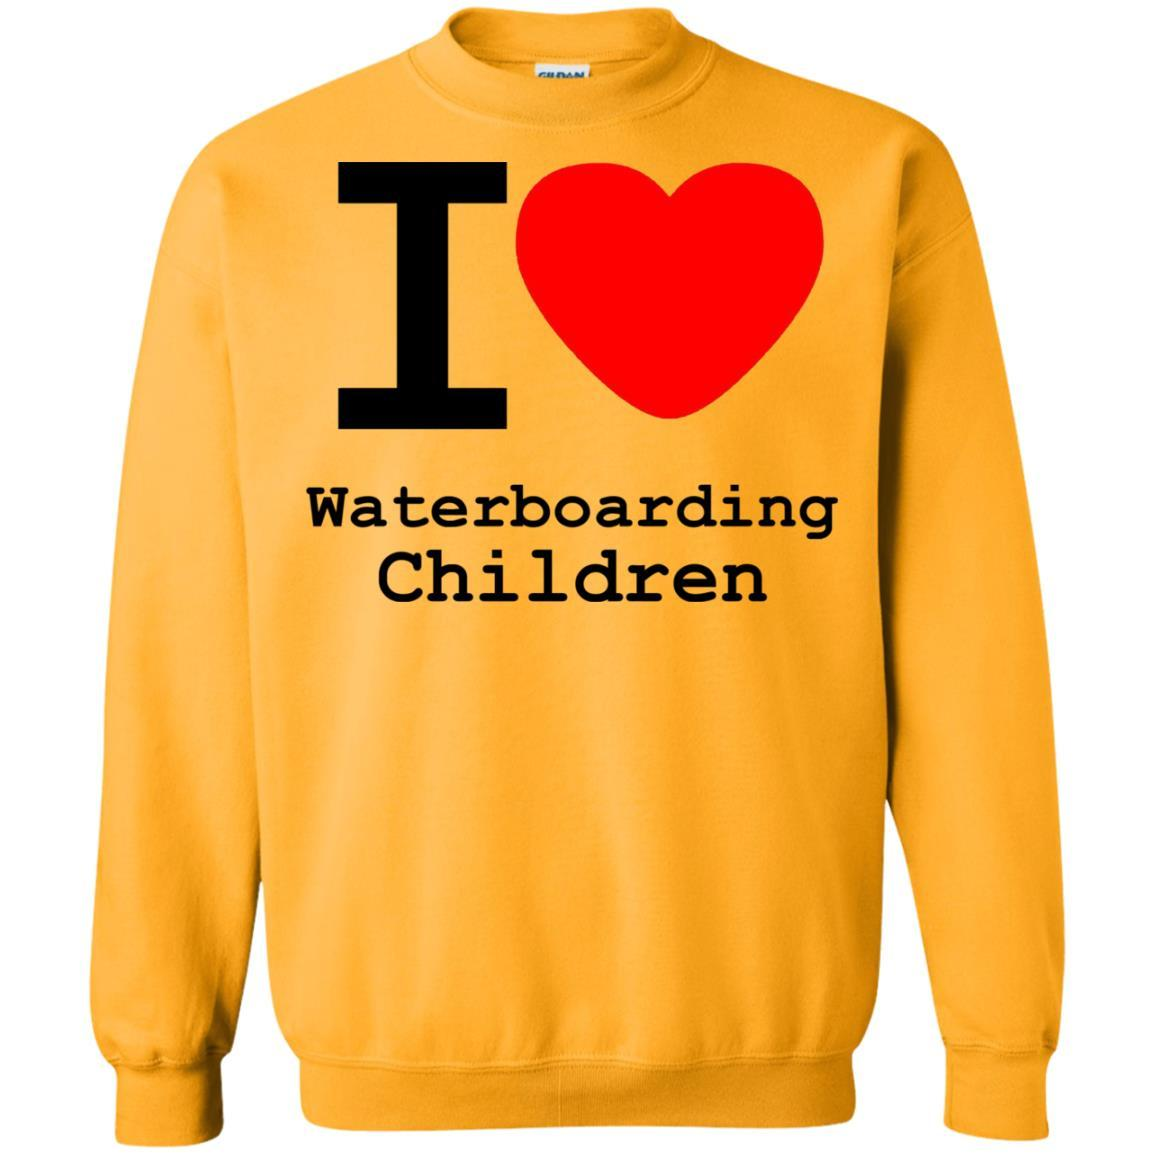 I love Waterboarding Children - Crewneck Pullover Sweatshirt Gold / 5XL